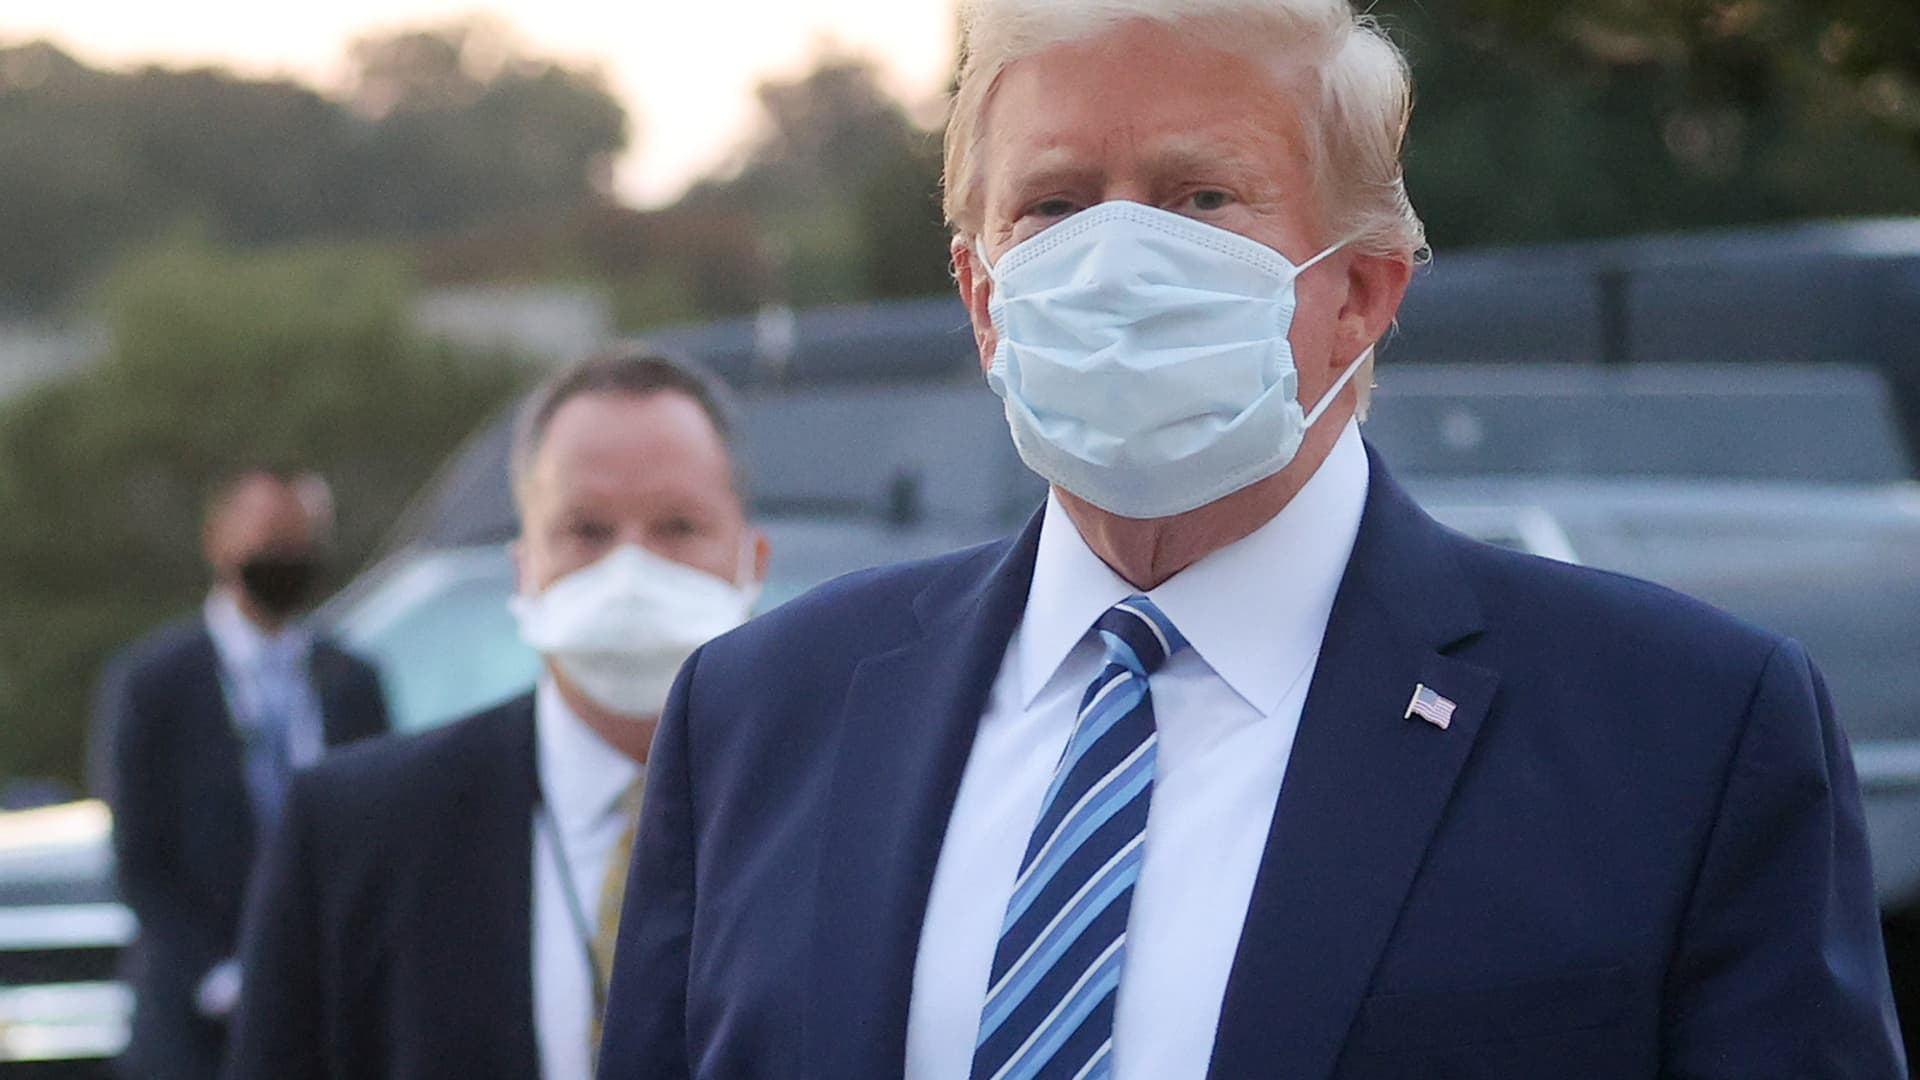 U.S. President Donald Trump looks over at reporters and photographers as the president departs Walter Reed National Military Medical Center after a fourth day of treatment for the coronavirus disease (COVID-19) to return to the White House in Washington from the hospital in Bethesda, Maryland, U.S., October 5, 2020.